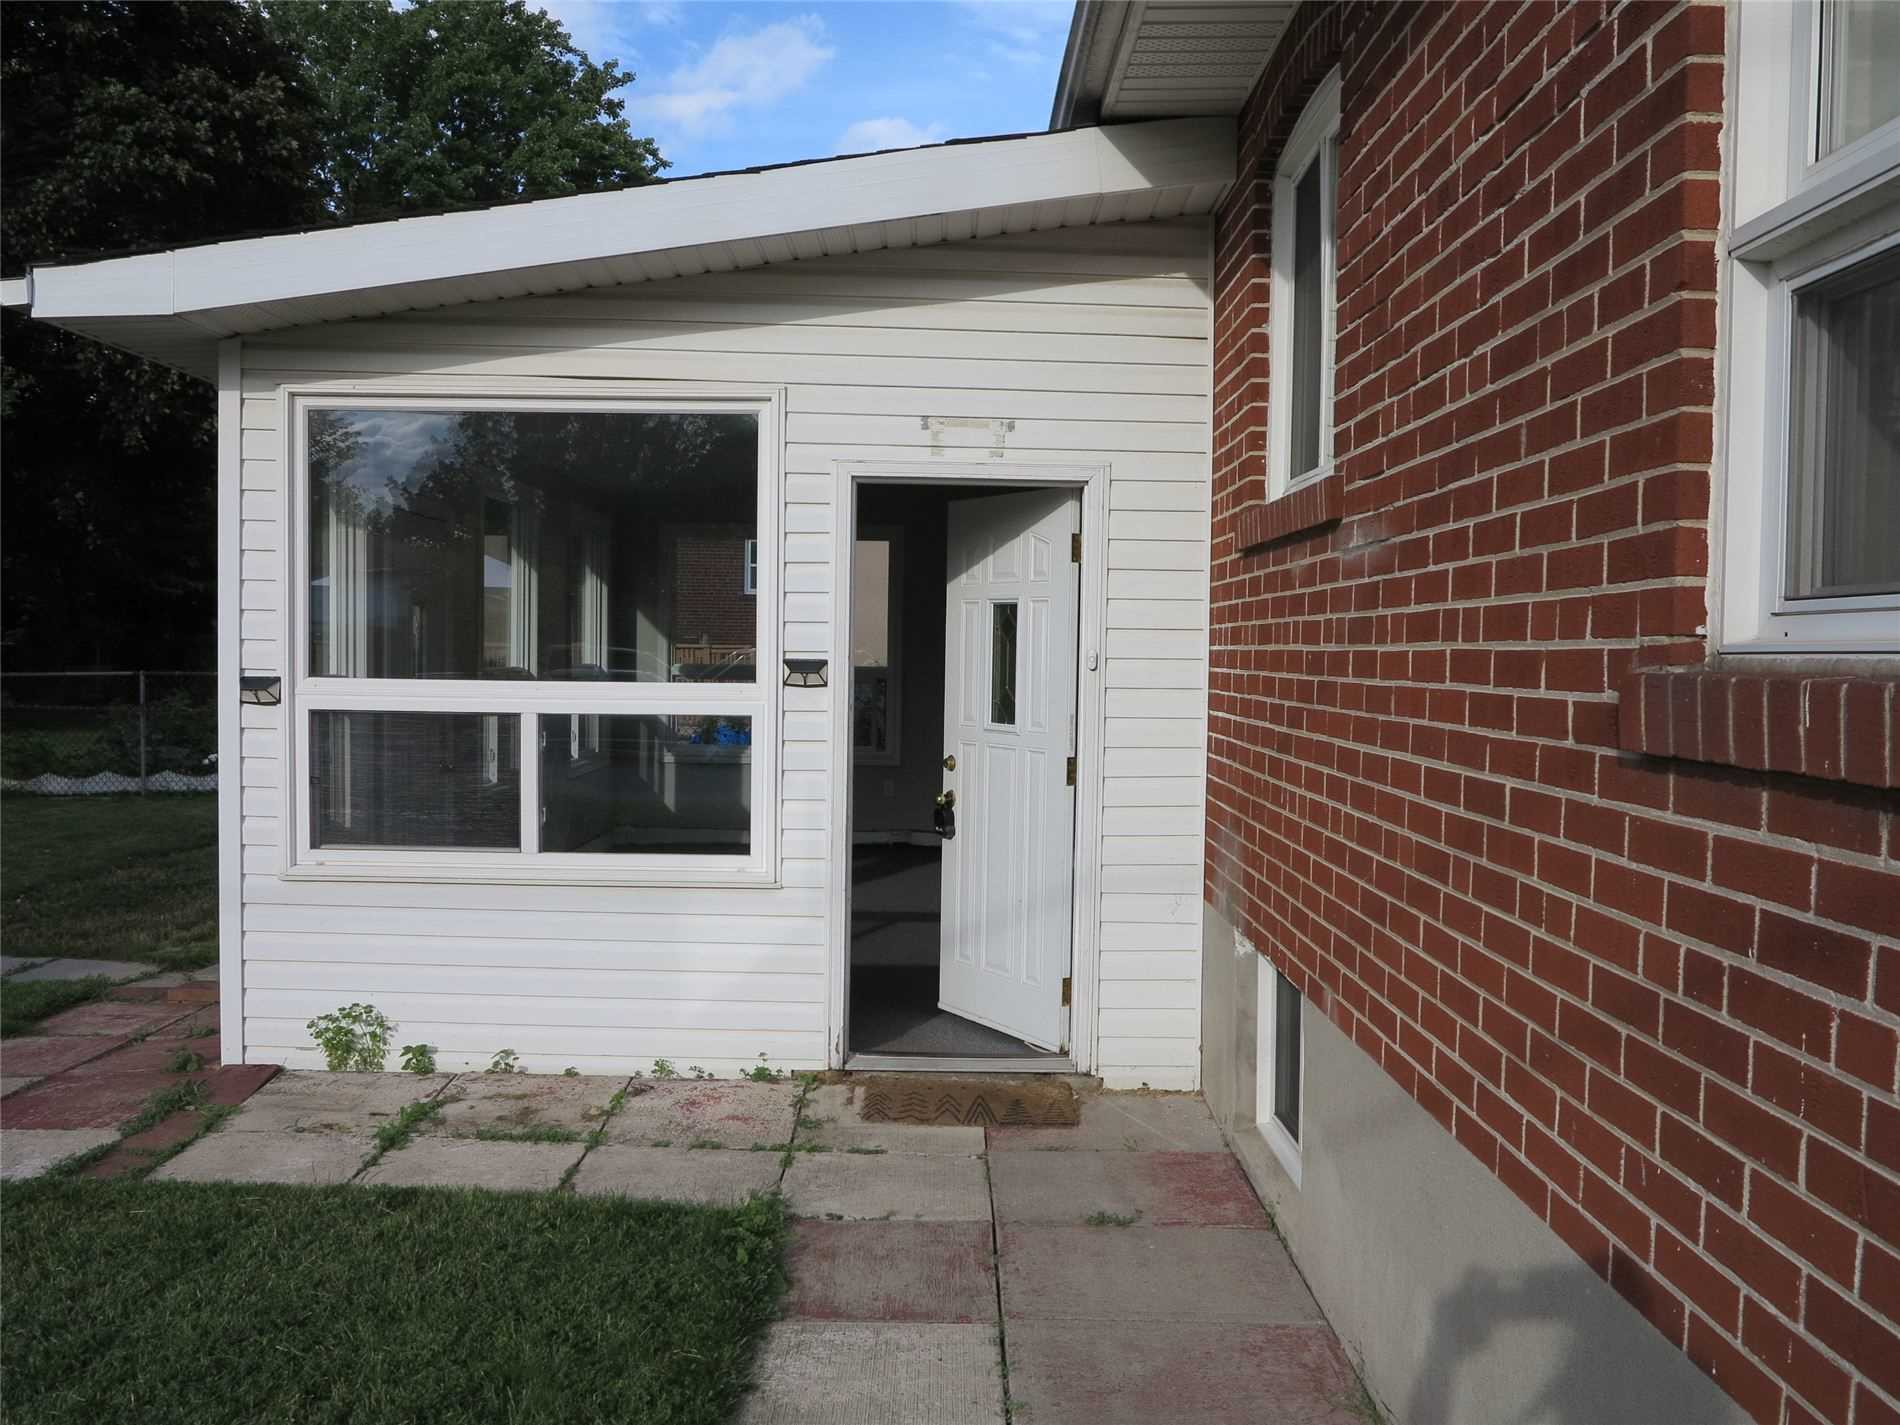 Image 8 of 30 showing inside of 3 Bedroom Detached Bungalow for Lease at 456 Drewry Ave, Toronto M2R2K7